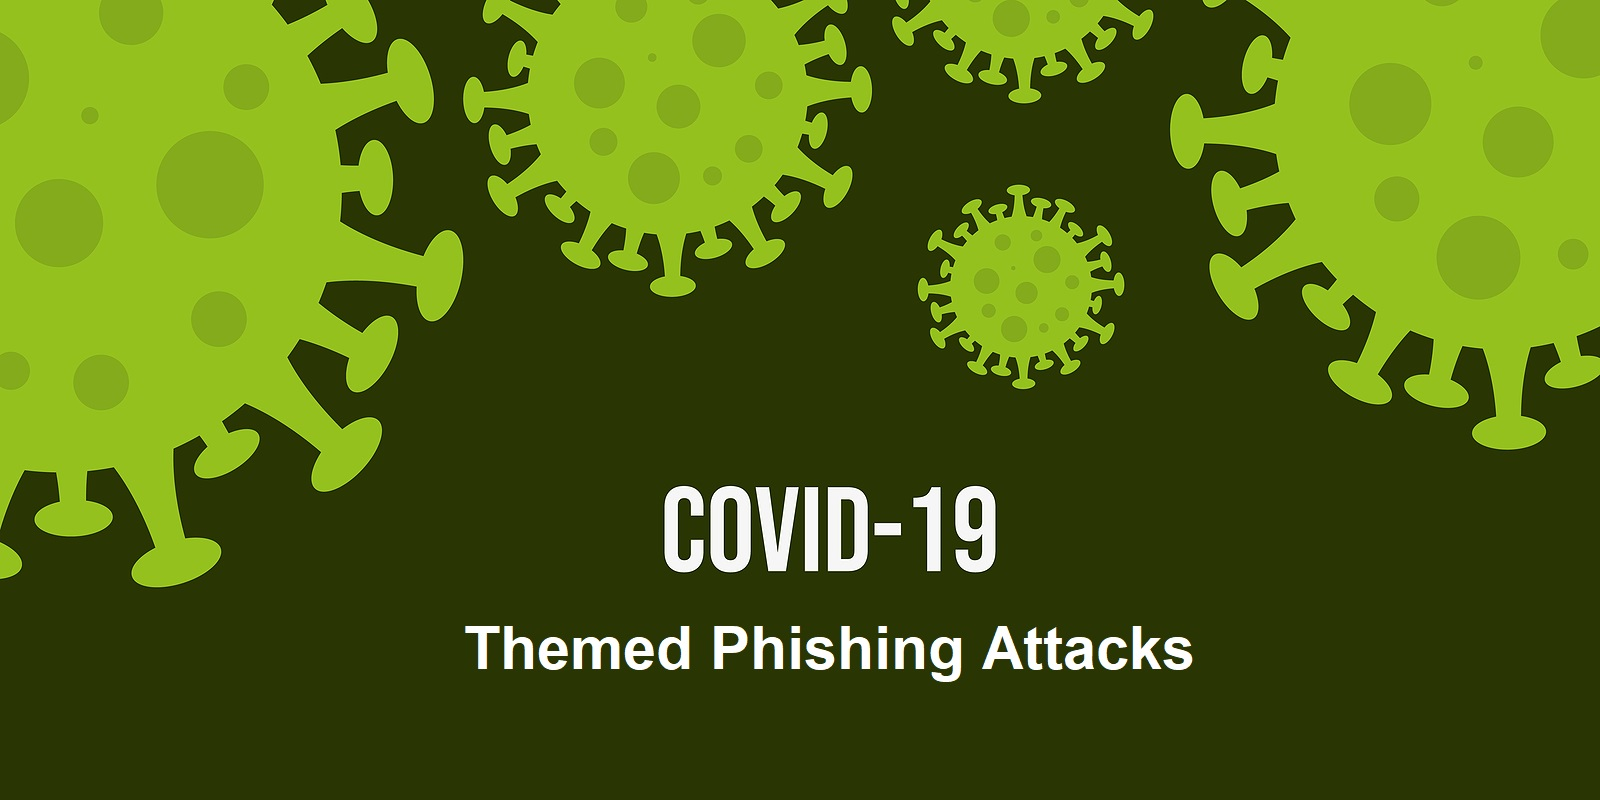 No Signs Of Sheltering In Place For Cybercrime Using COVID-19 Theme